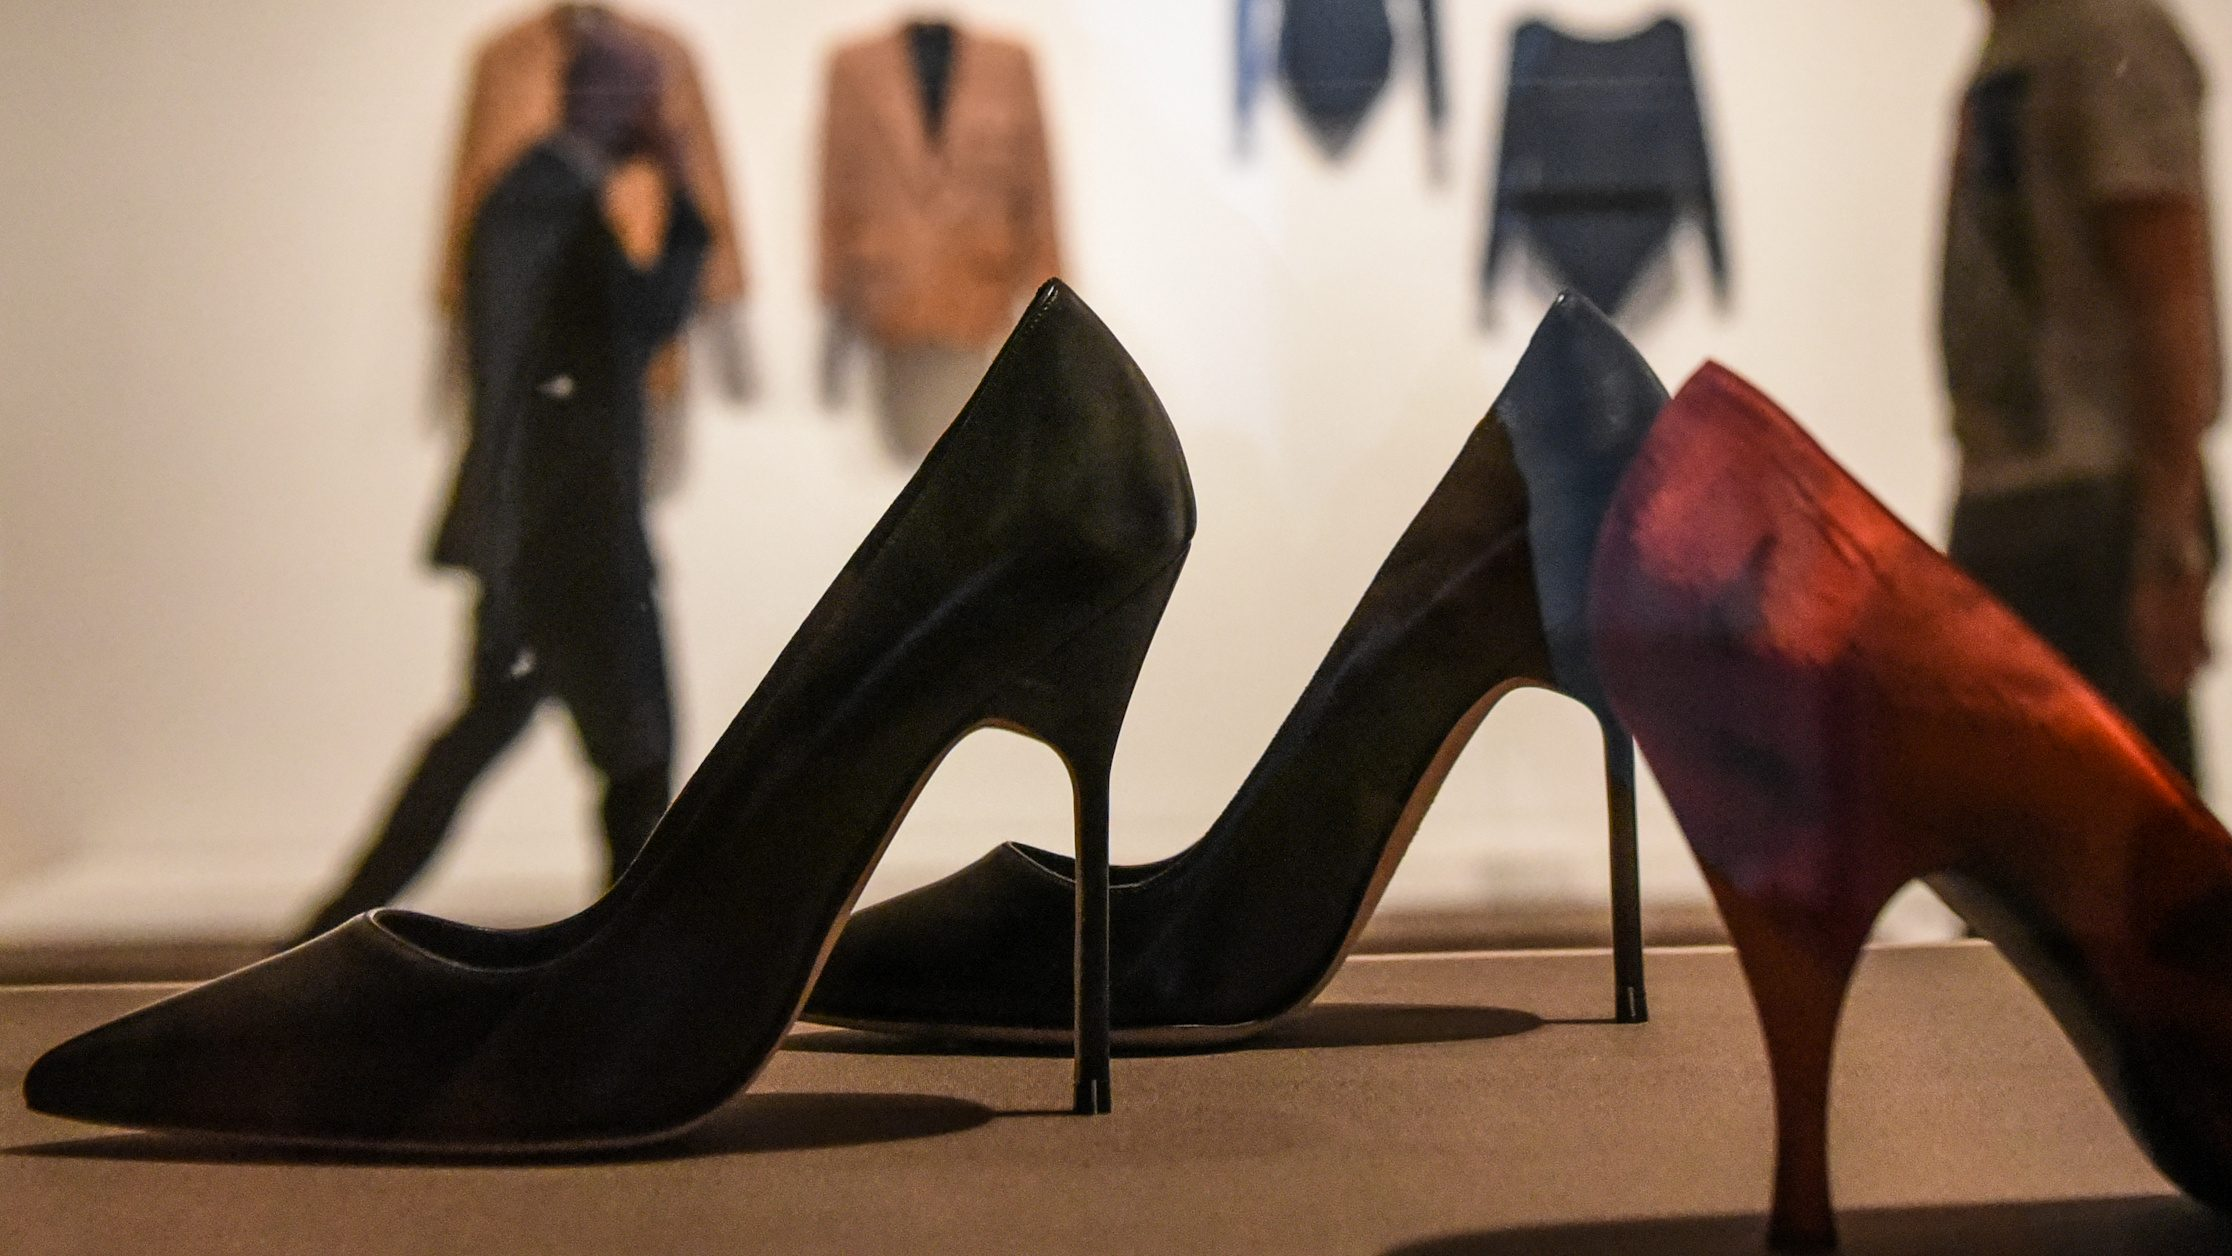 High heeled shoes are seen on display at the Museum of Modern Art